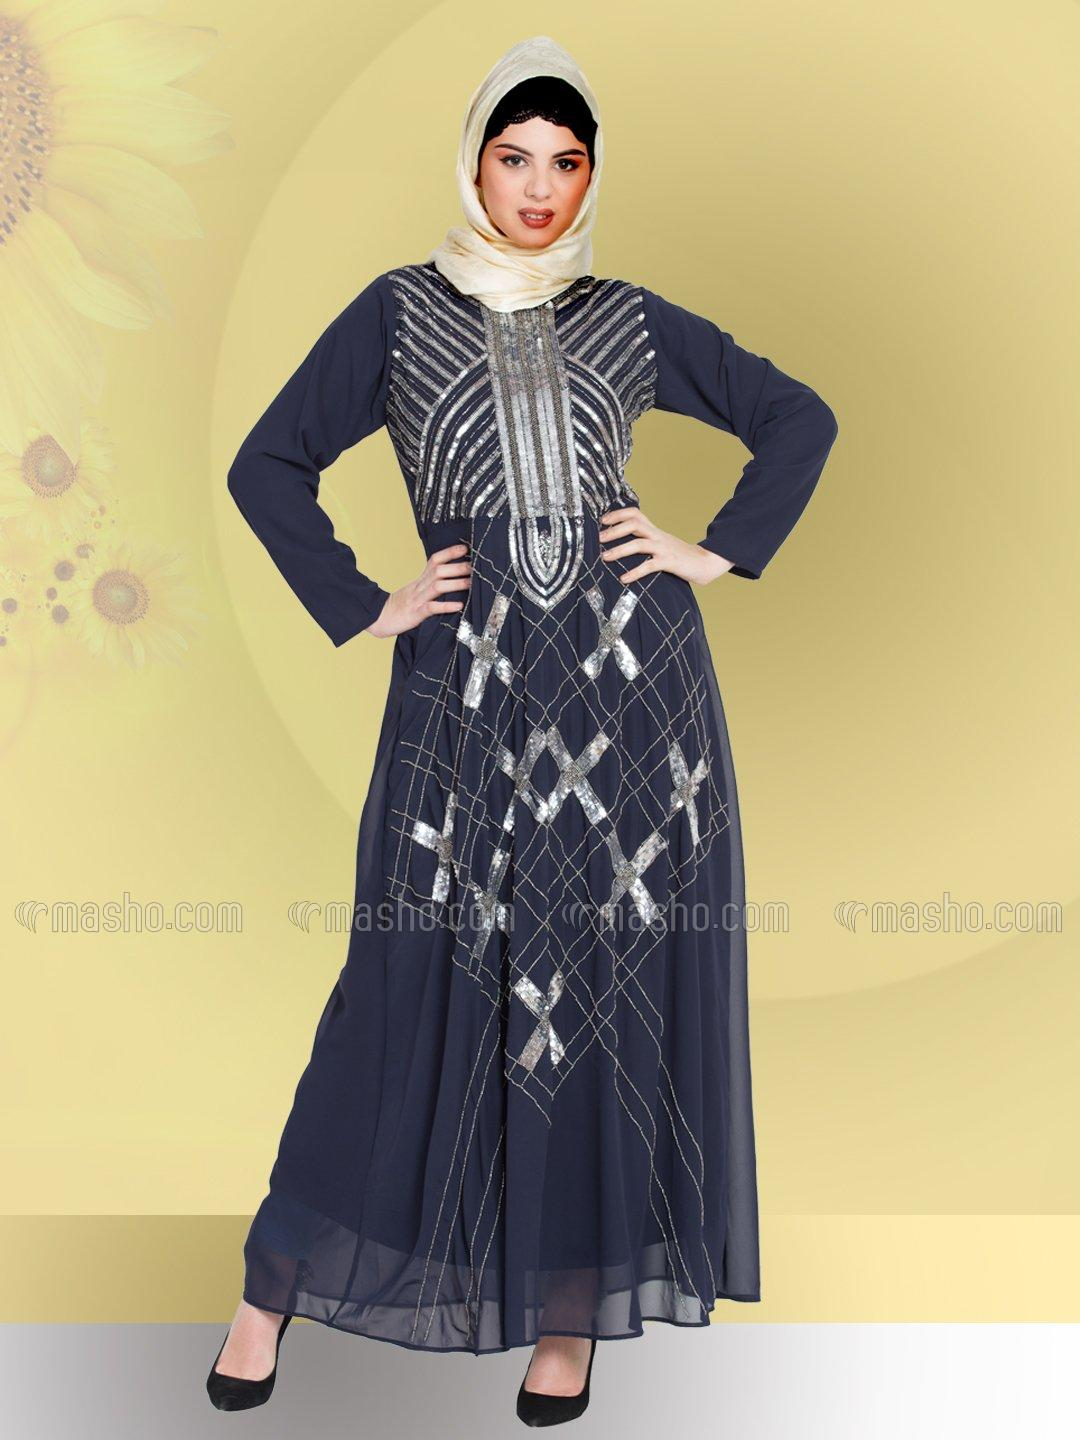 100% Polyester Abaya With Beads Sequins Embellished in Navy Blue